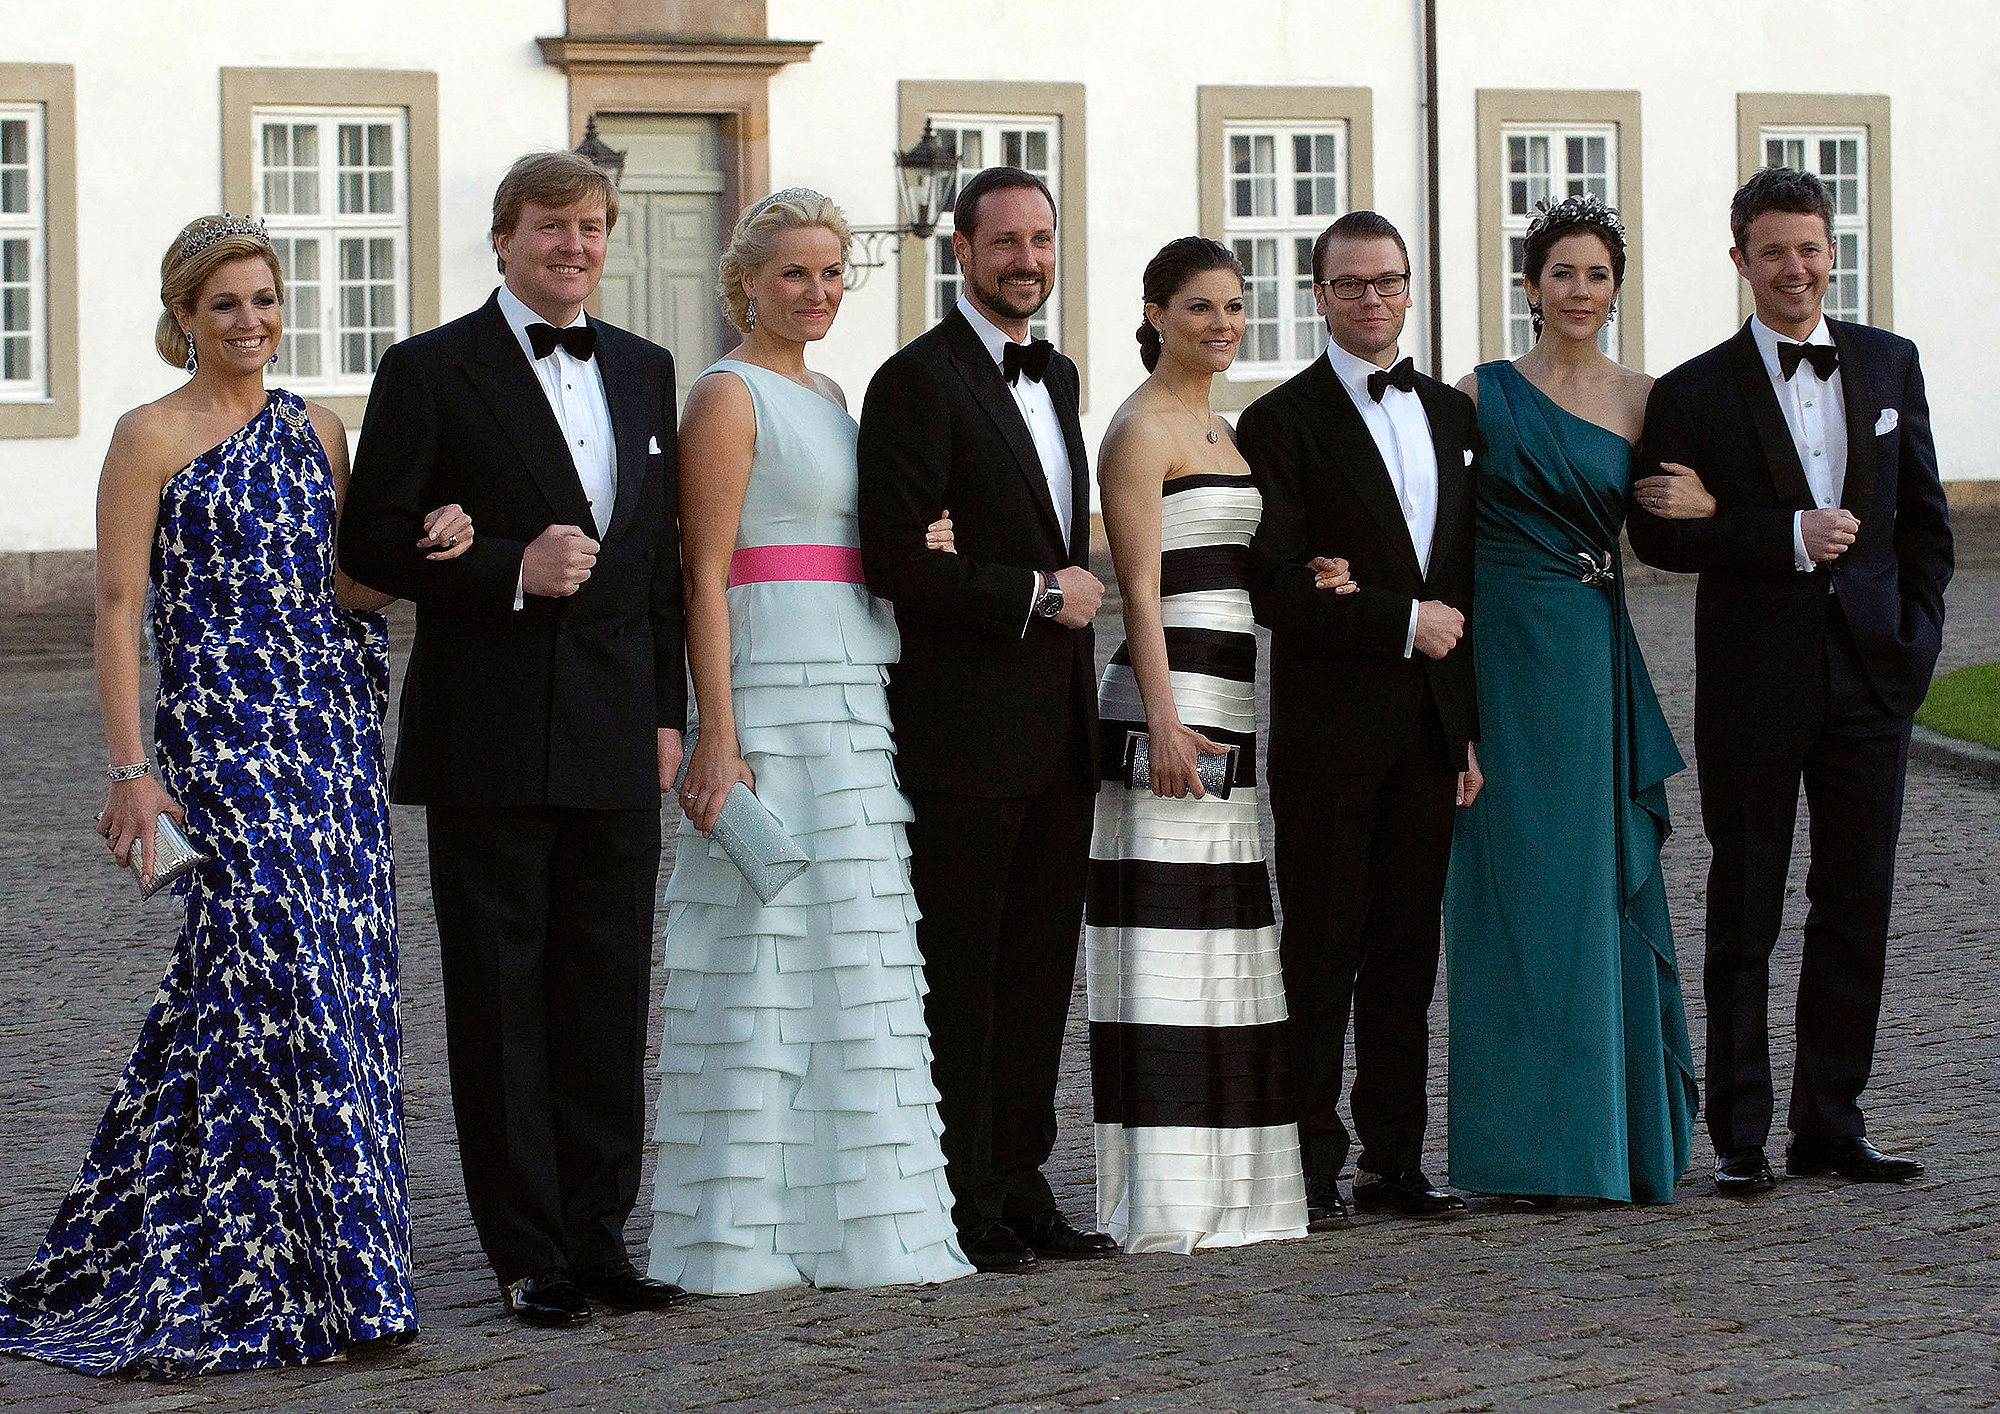 Crown Princess Maxima and Crown Prince Willem-Alexander, Norway's Crown Princess Mette-Marit and Crown Prince Haakon, Sweden's Crown Princess Victoria and Daniel Westling and Danish Crown Princess Mary